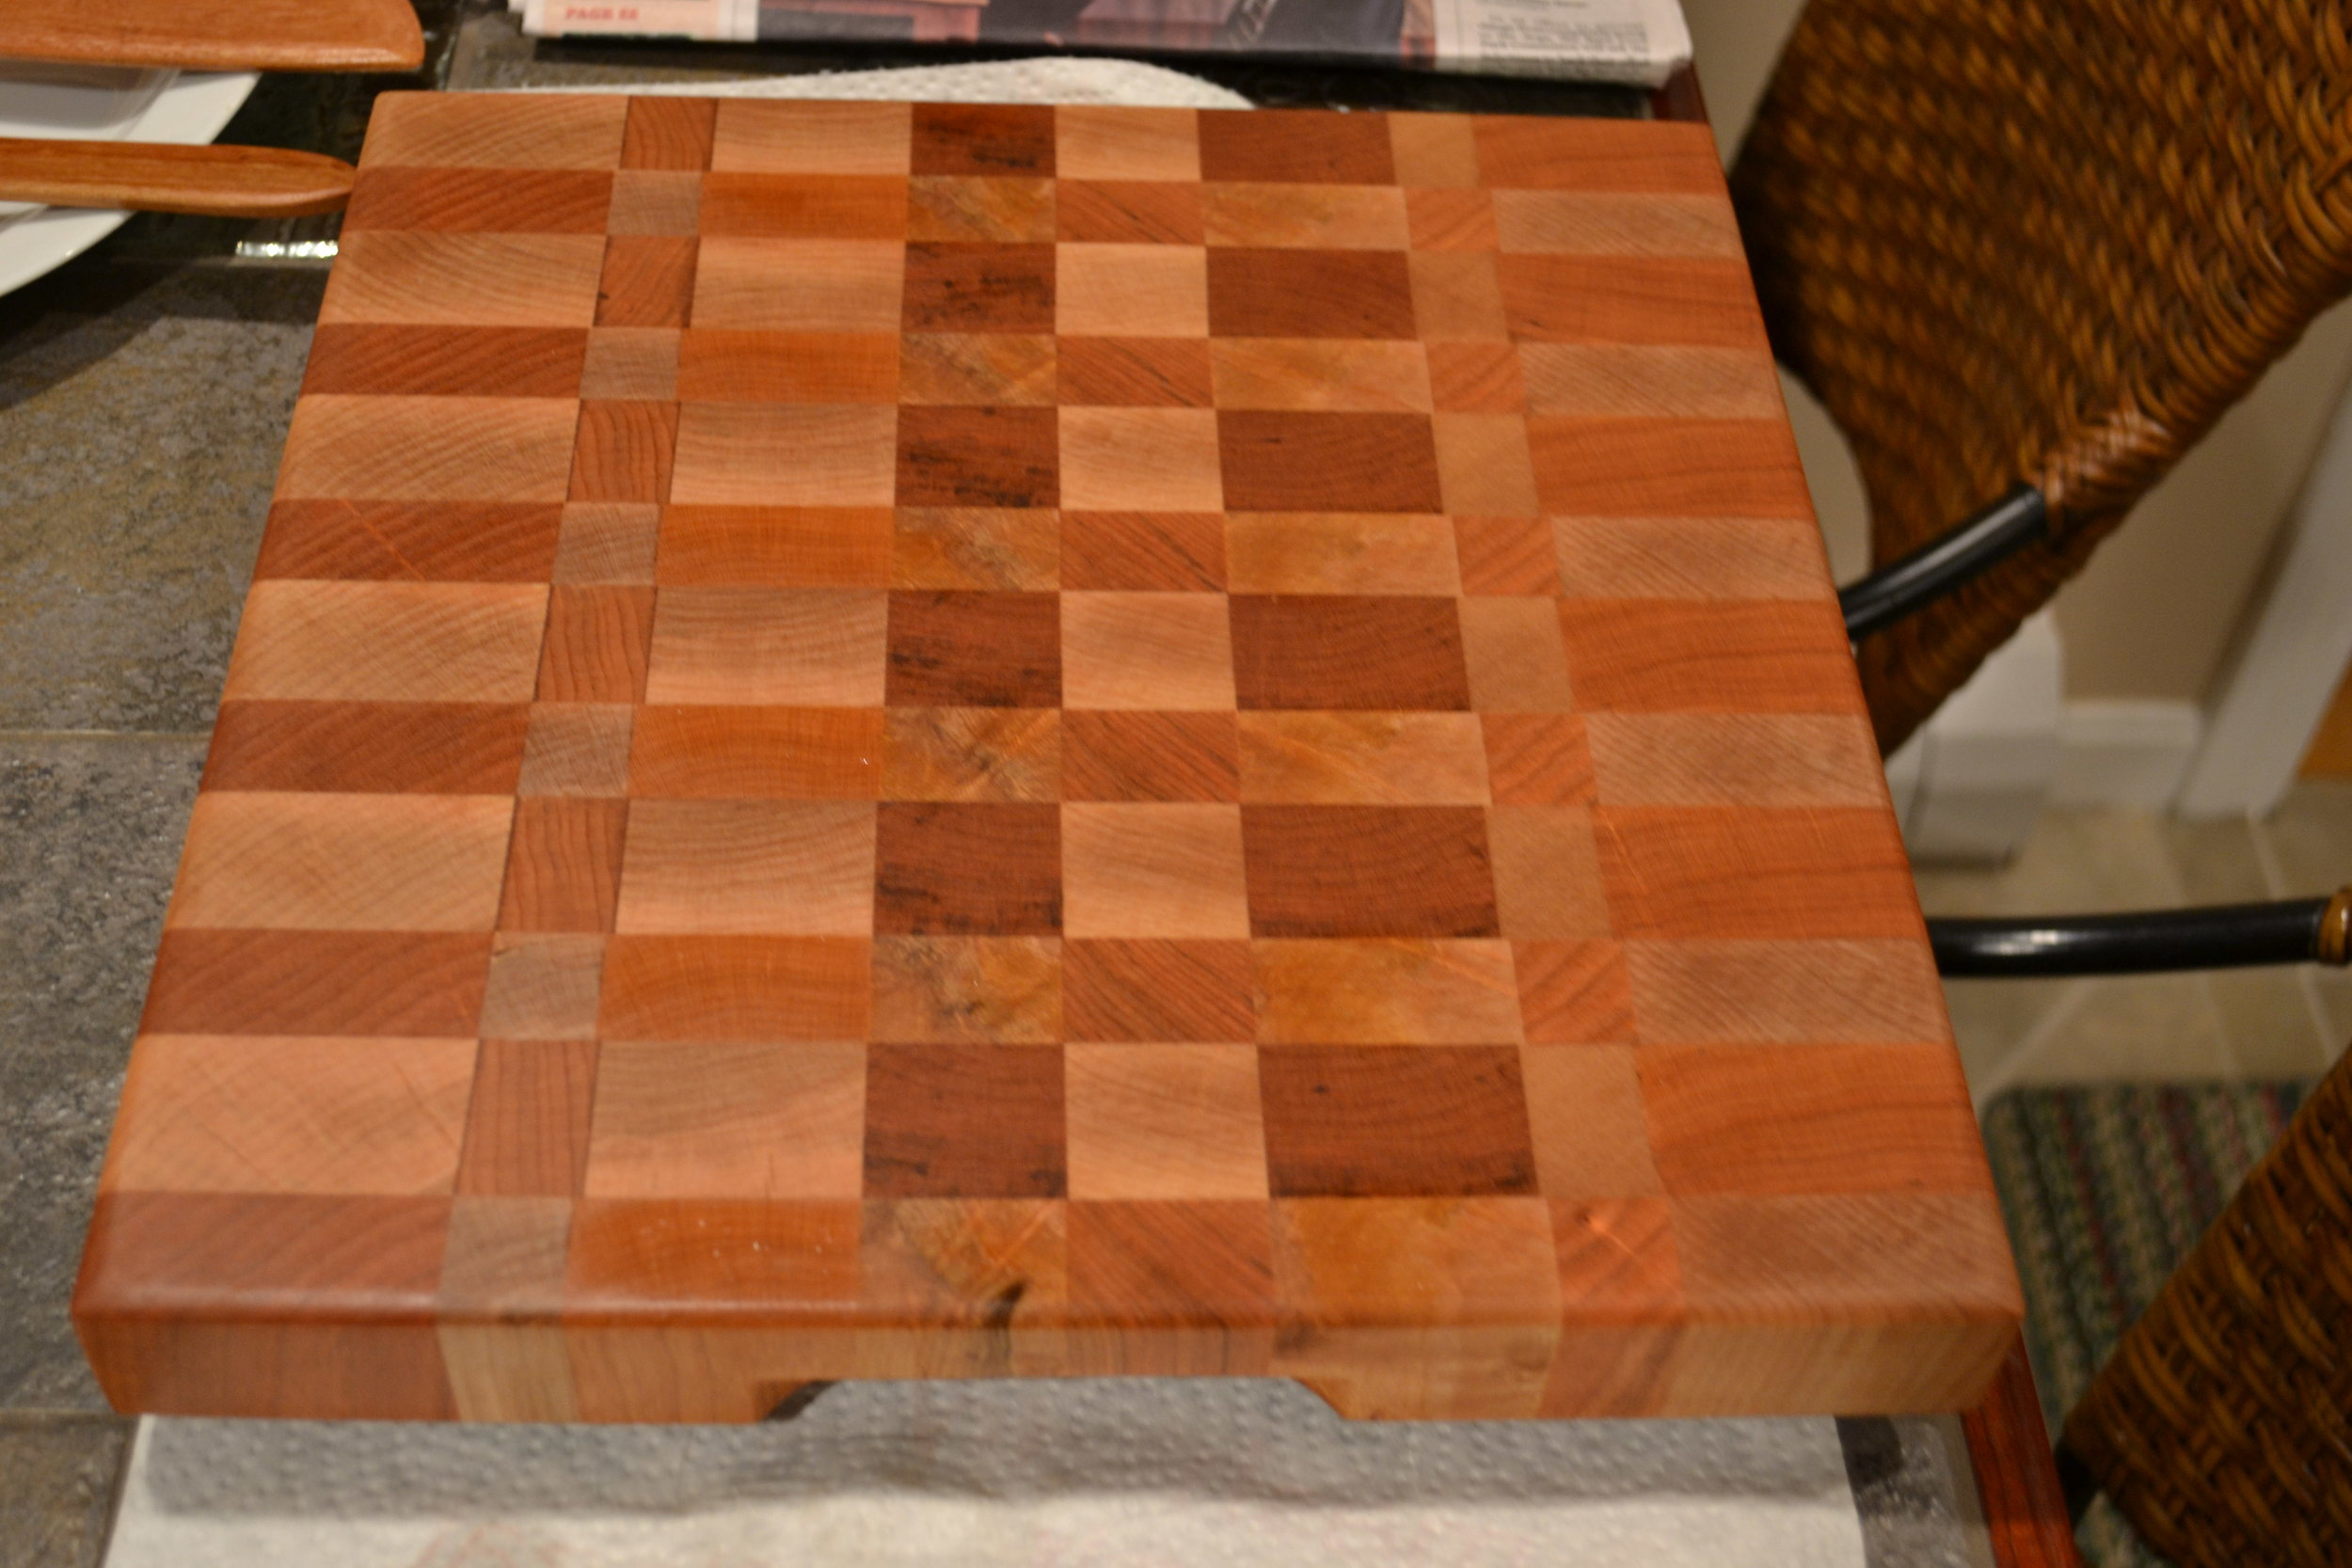 CuttingBoard8.JPG